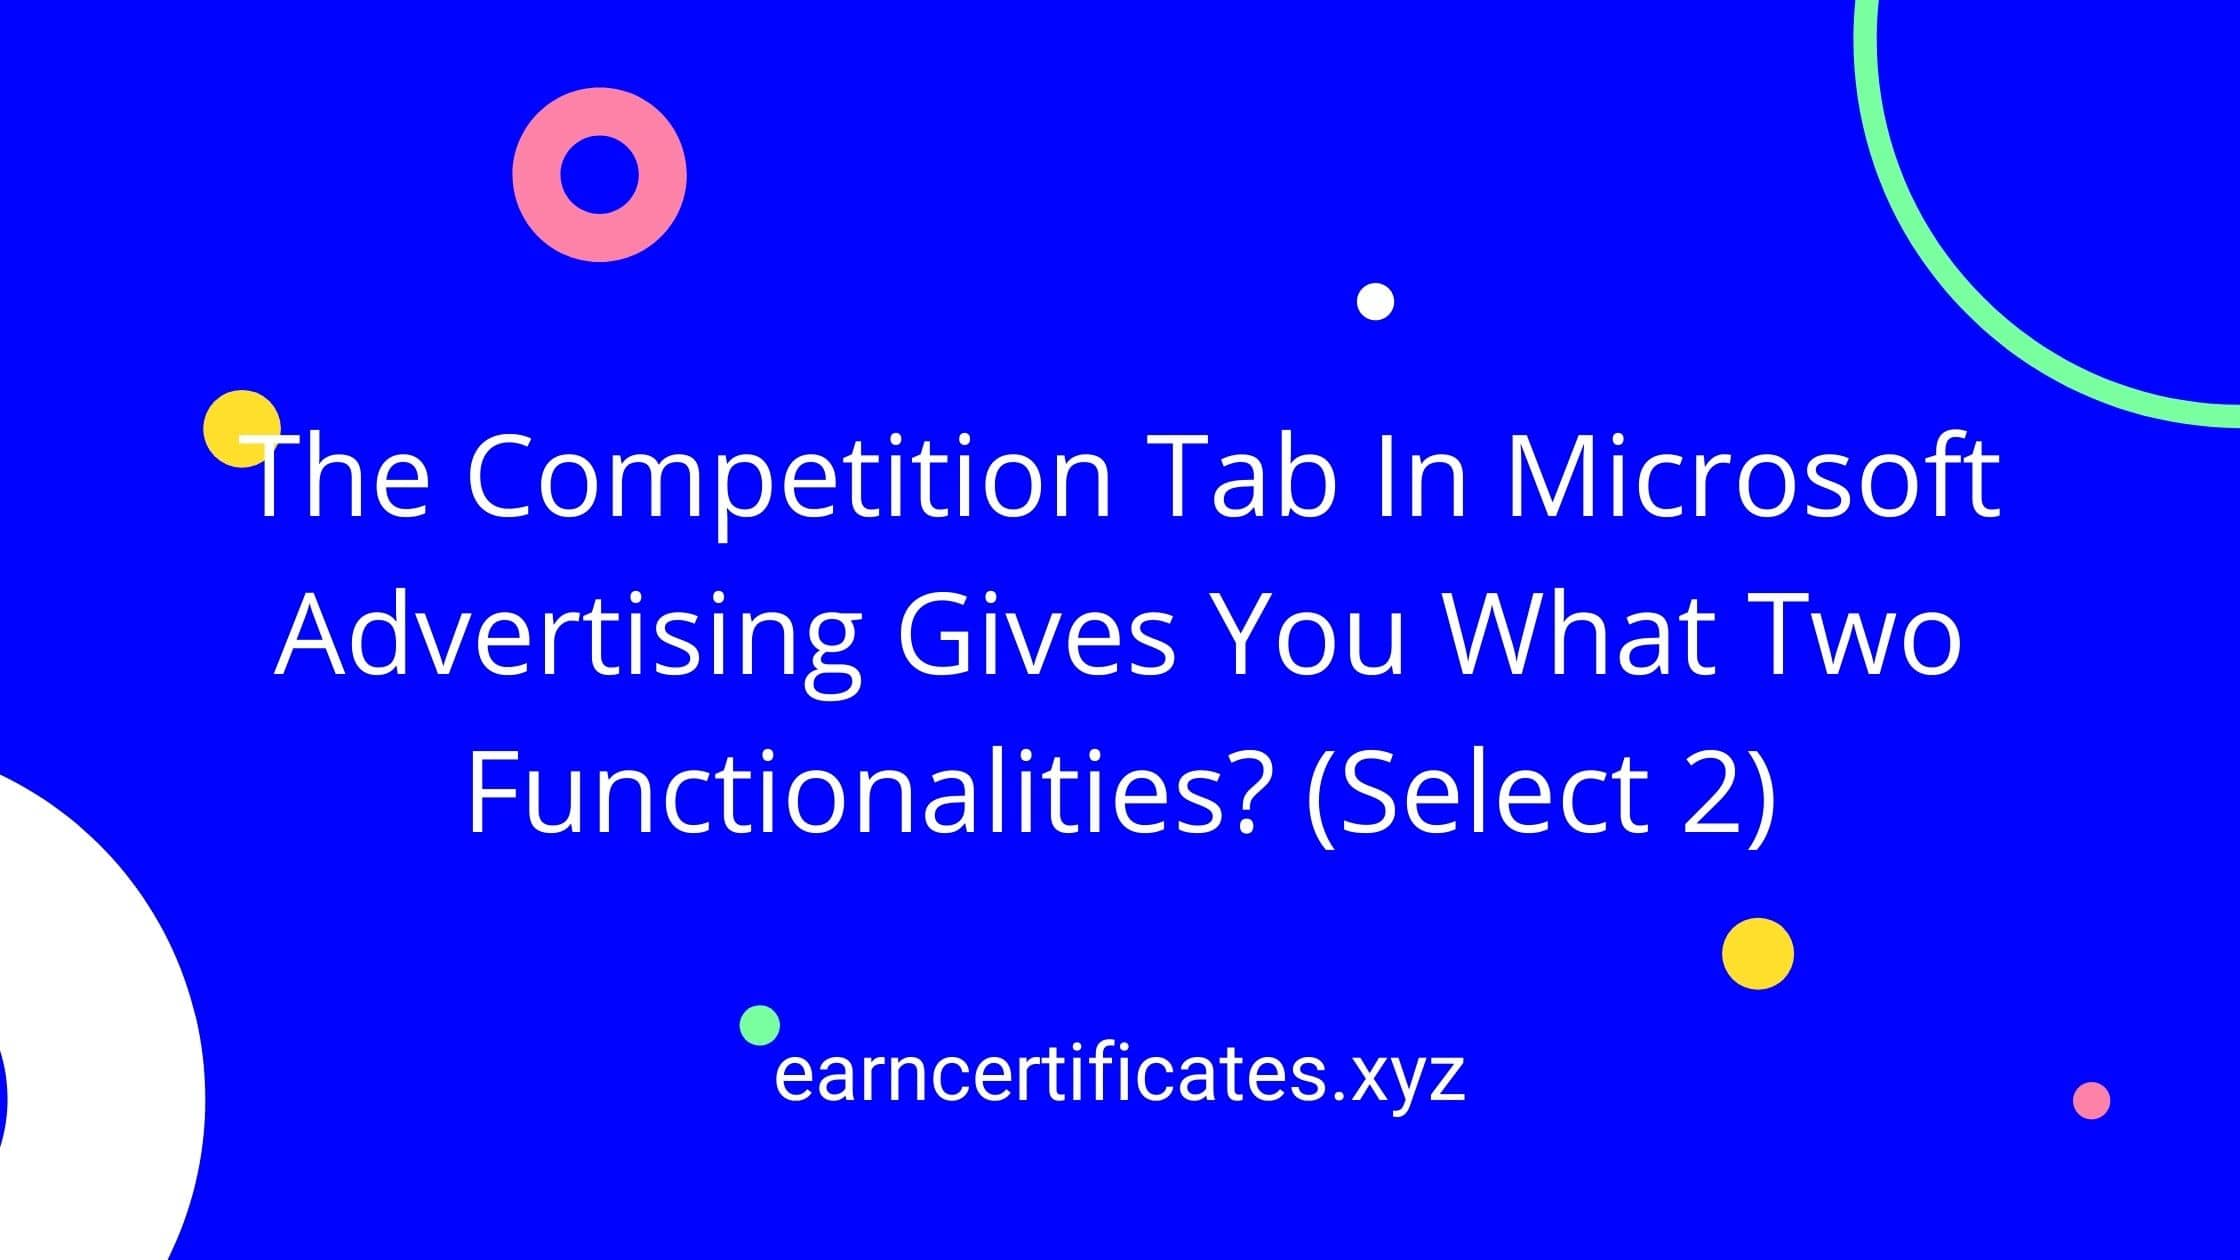 The Competition Tab In Microsoft Advertising Gives You What Two Functionalities? (Select 2)